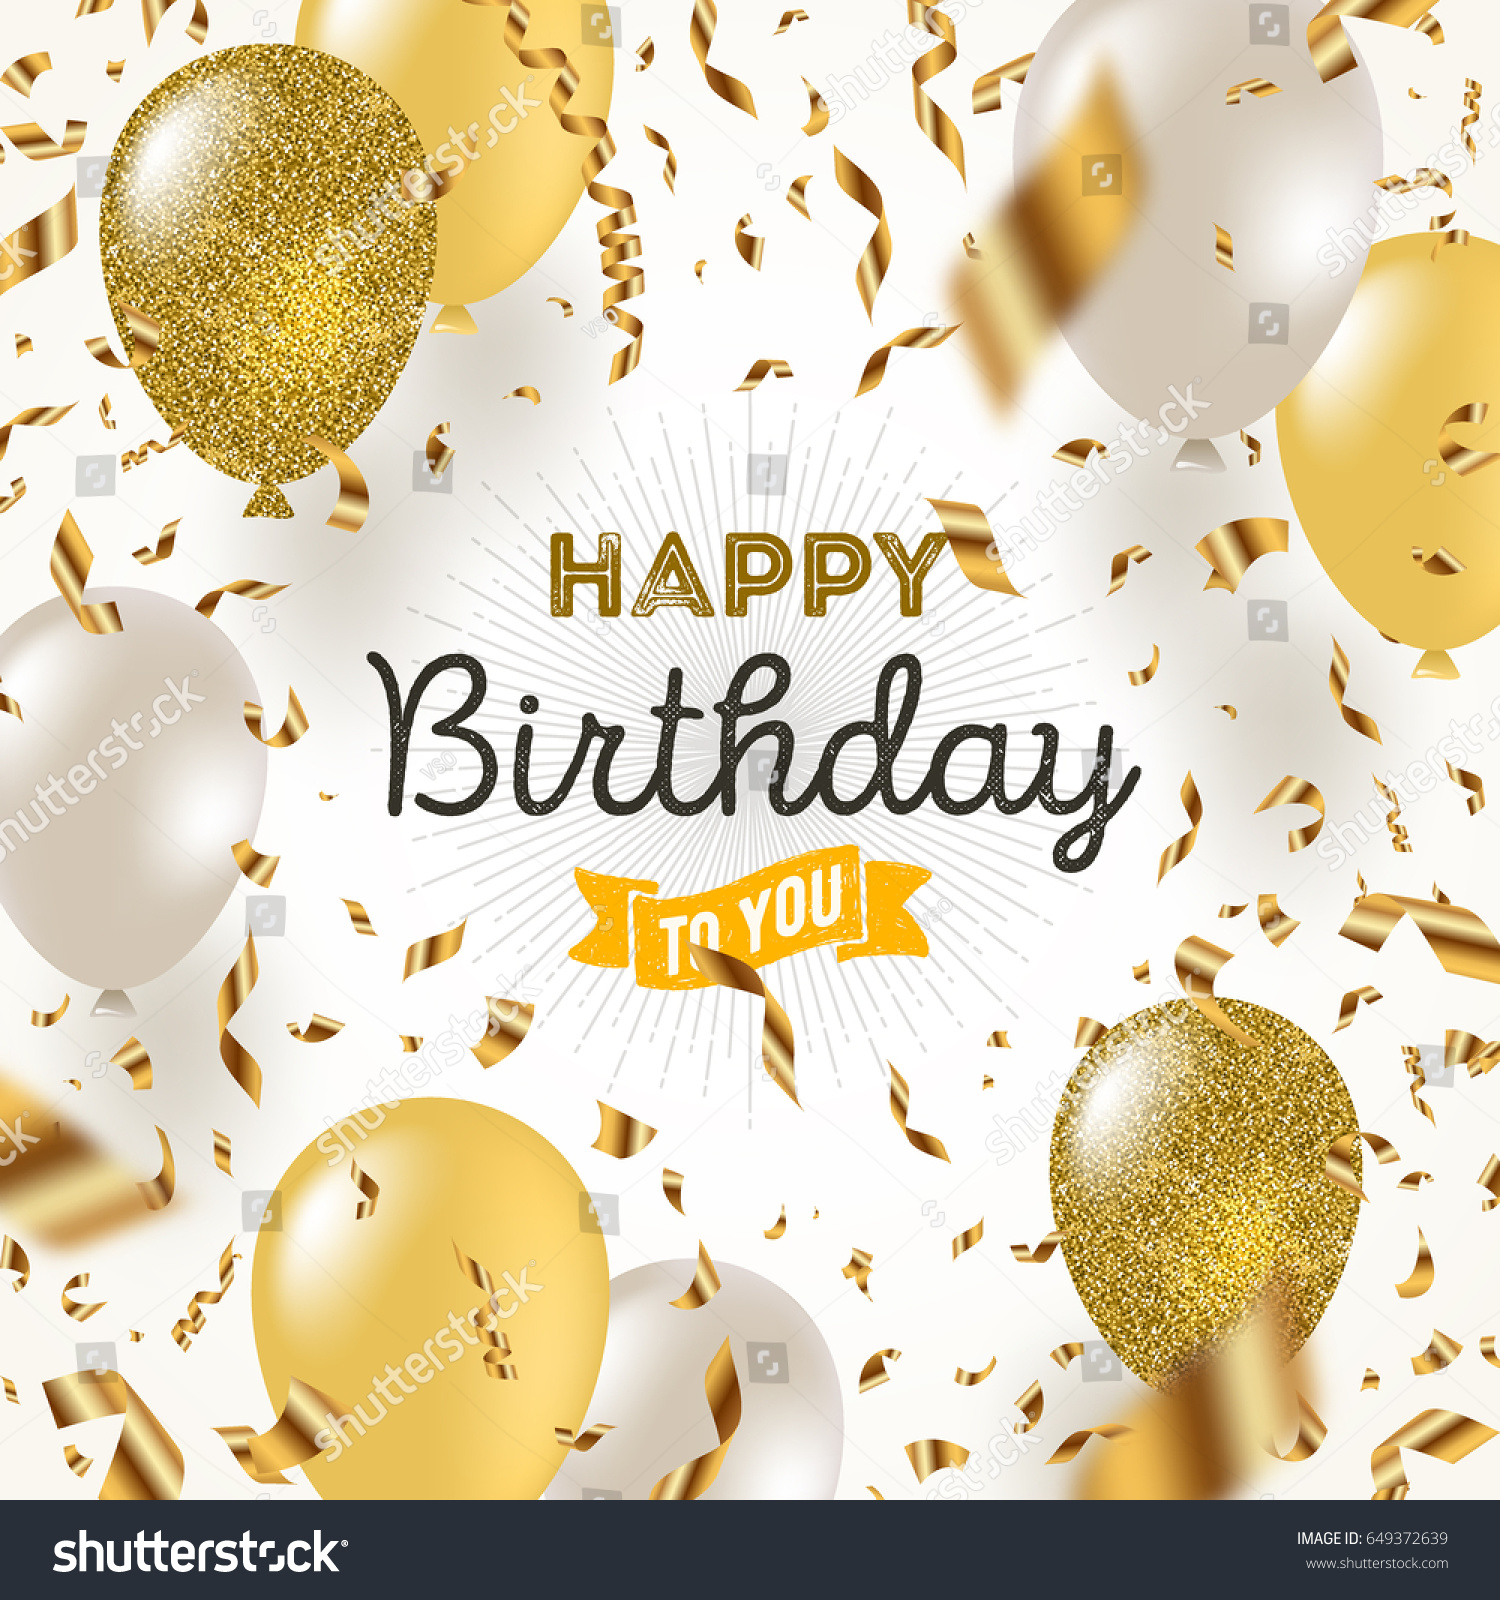 Happy birthday vector illustration golden foil stock vector 649372639 shutterstock